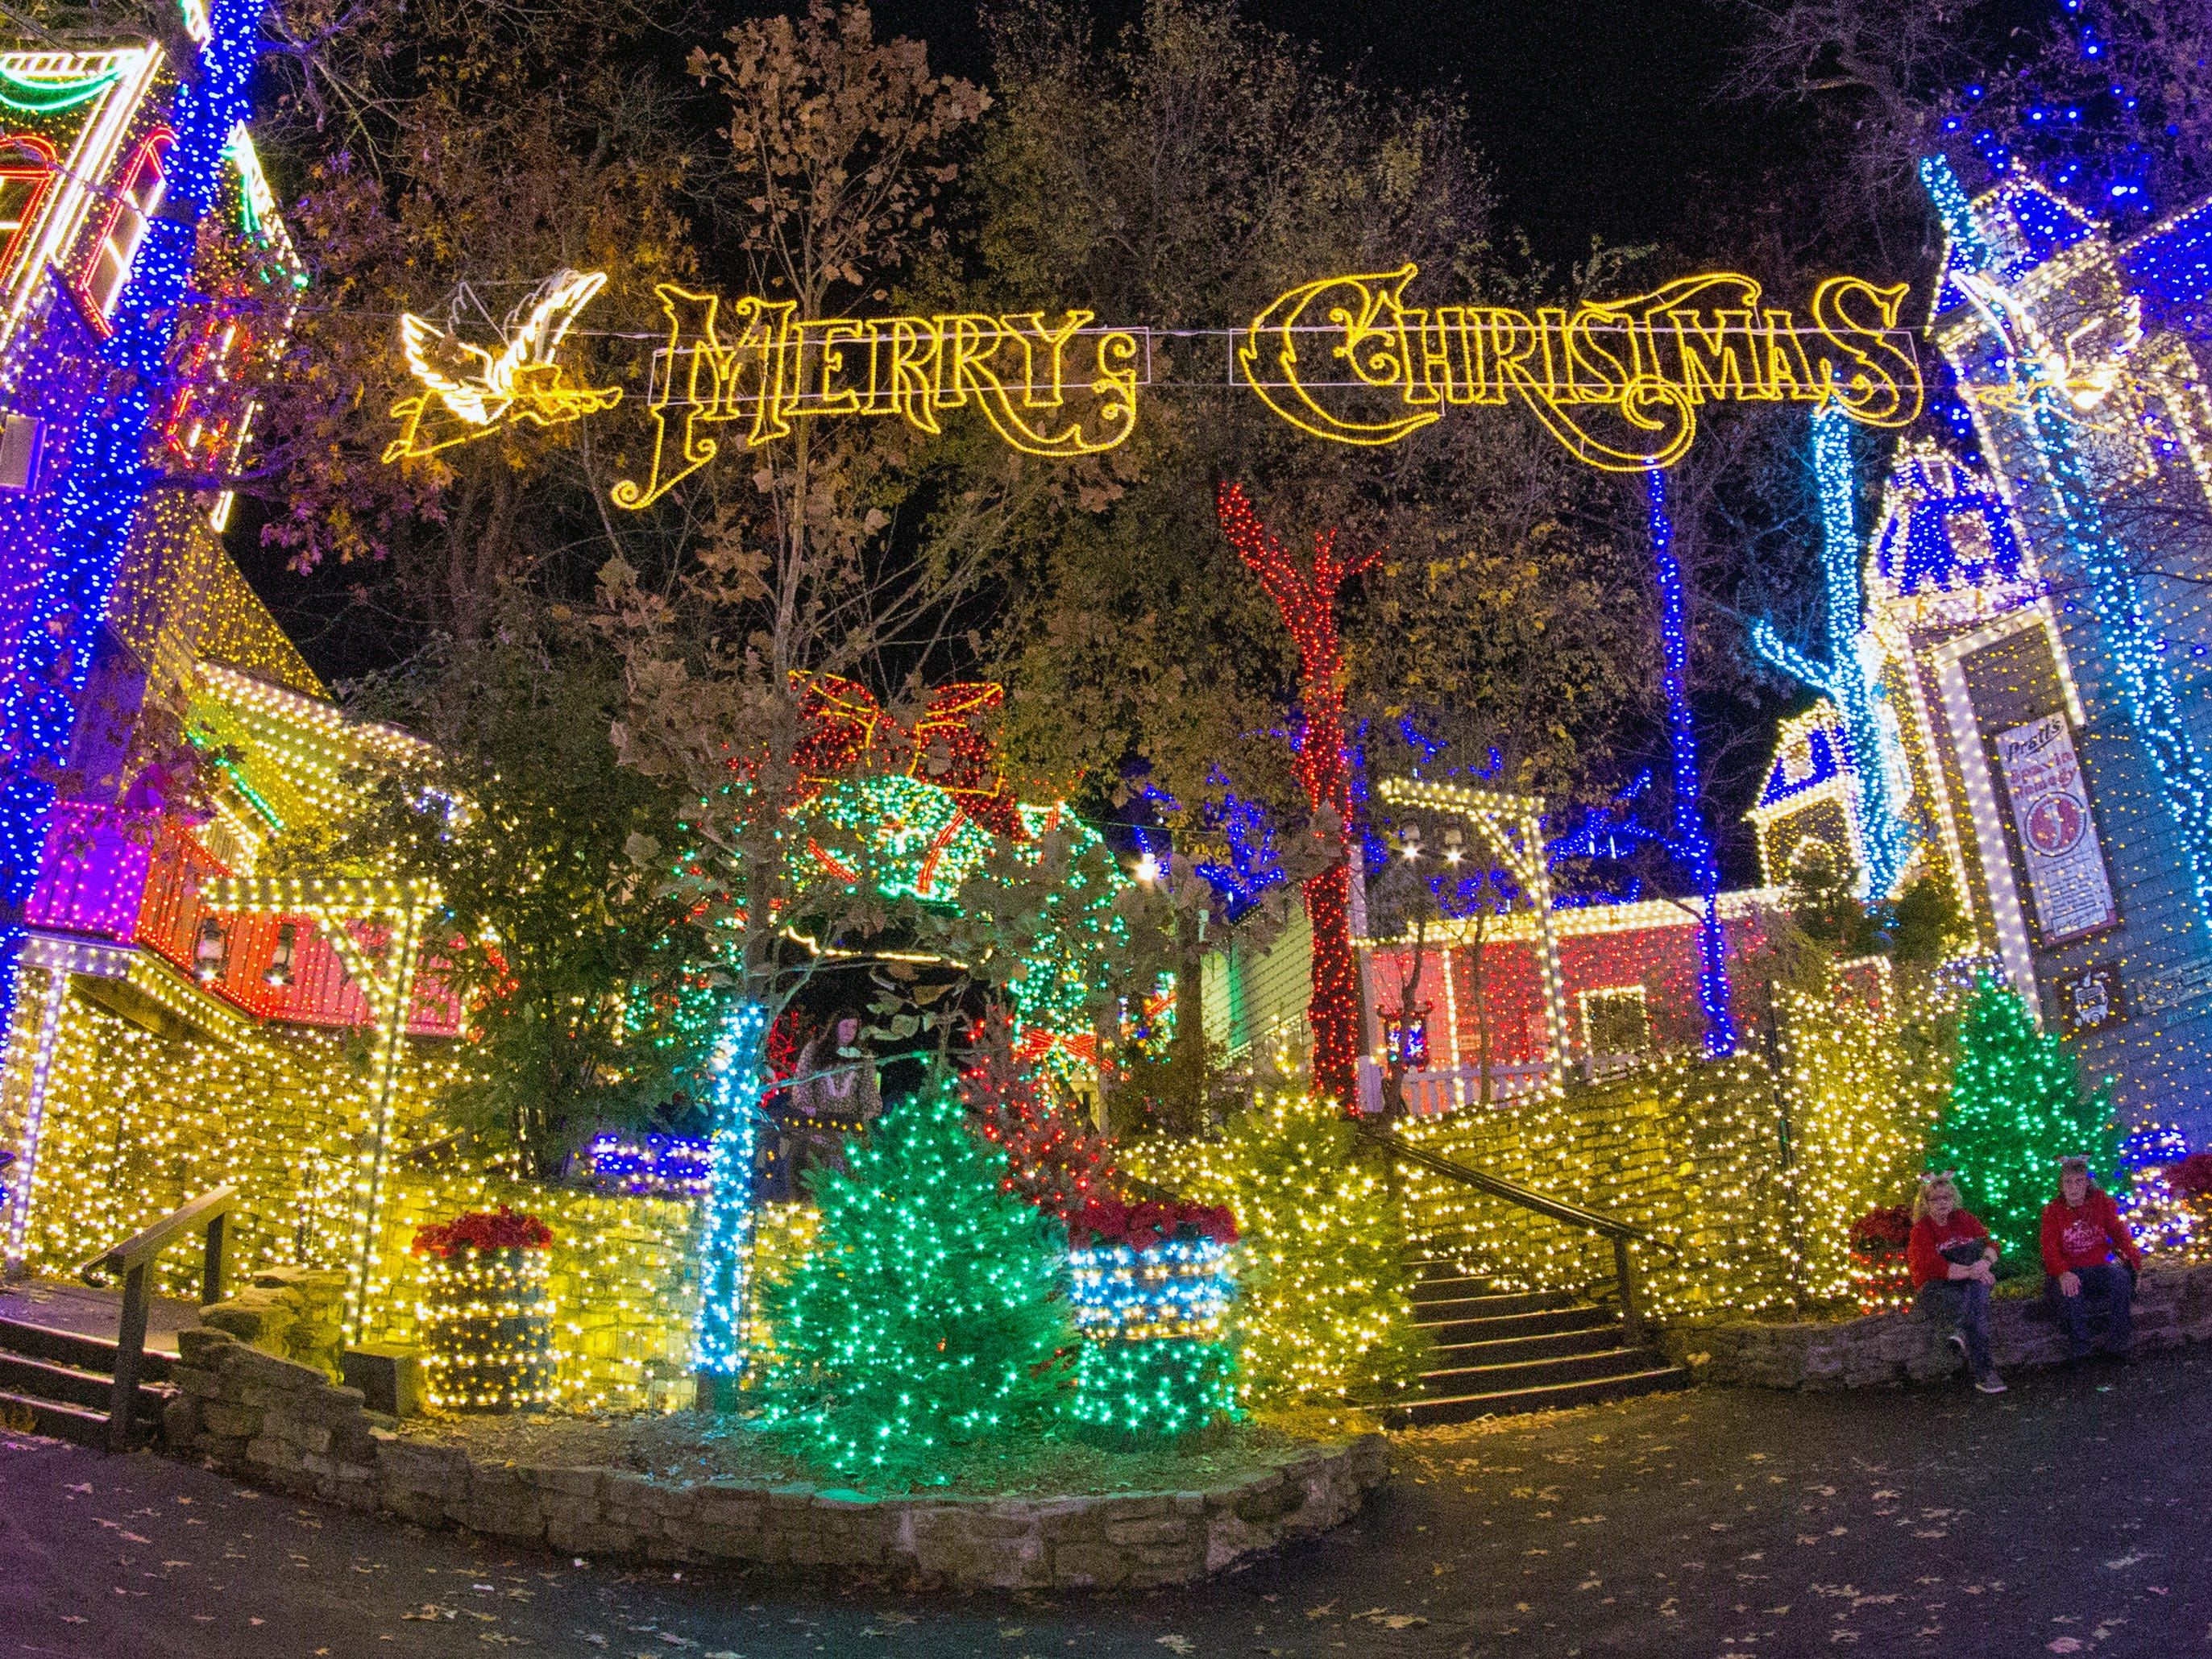 For the Christmas in Midtown Light Spectacular, now in its second year, Silver Dollar City has plastered nearly every square inch of the land with 1.5 million bulbs. It has even built faux second stories on many of Midtown's buildings to give it more surface area to bathe in light.